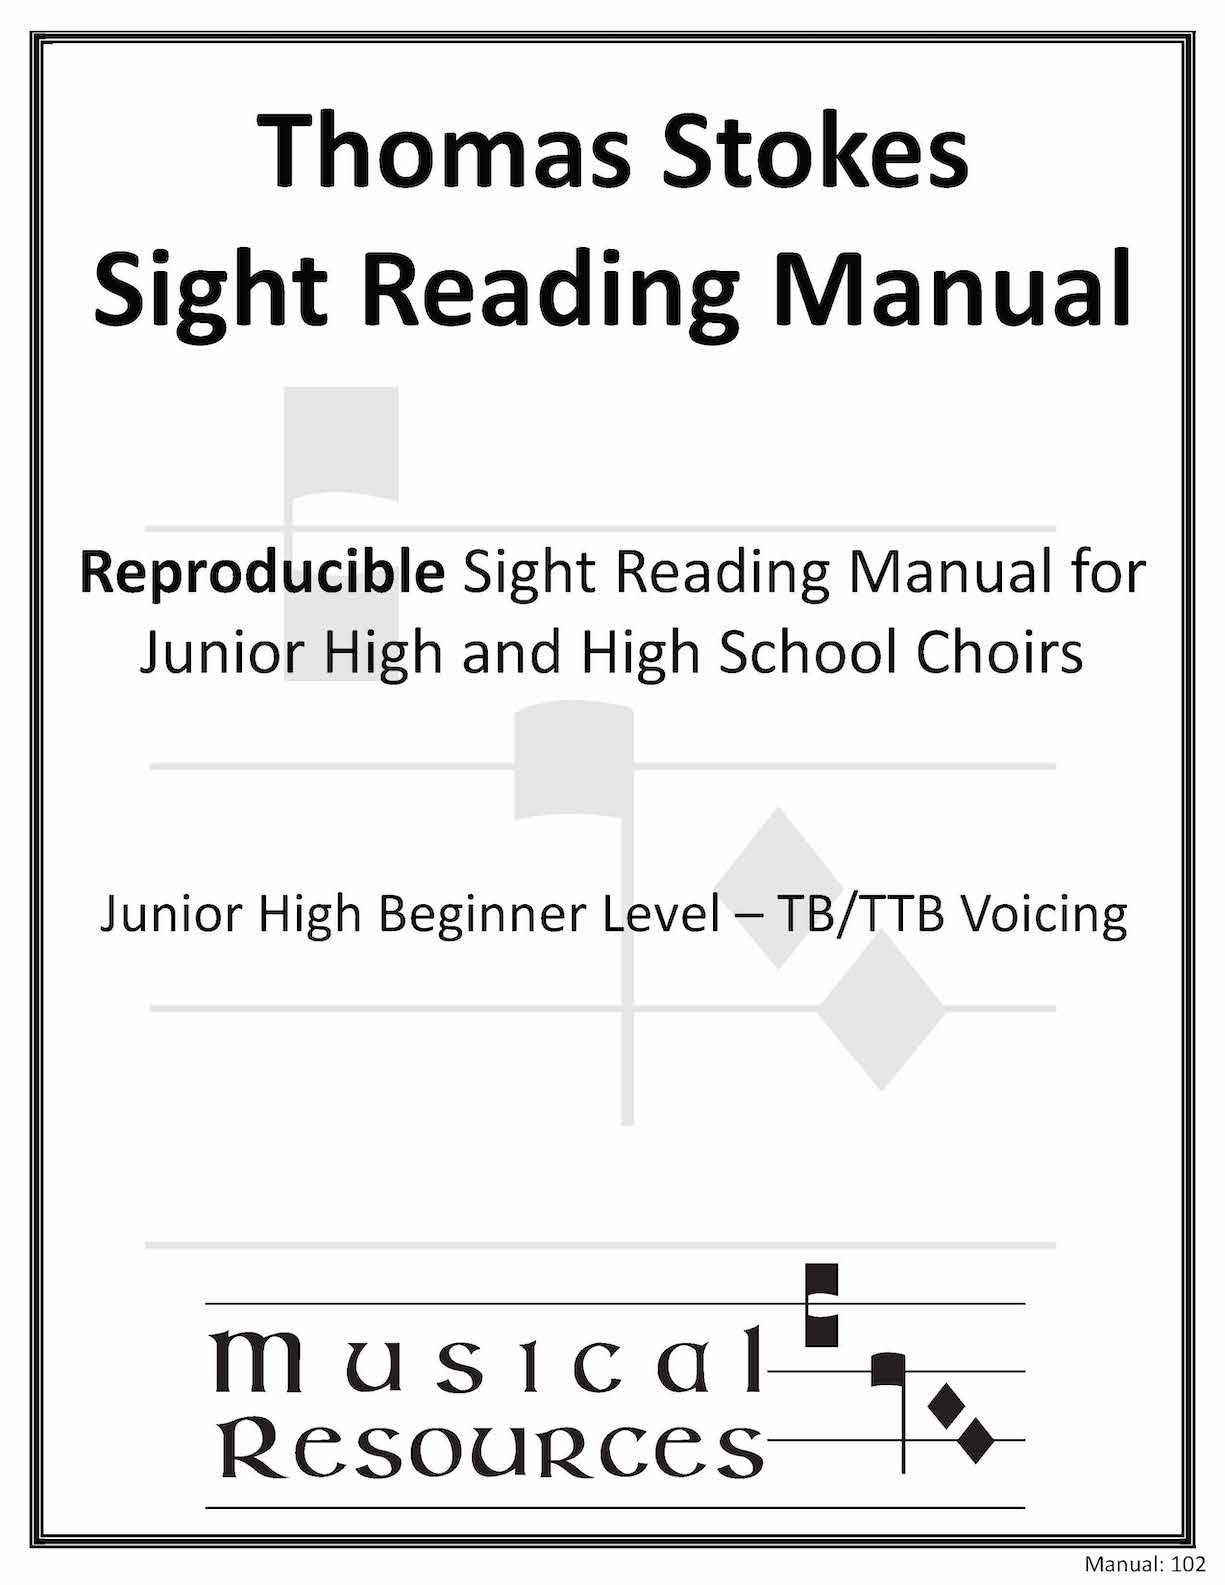 Picture of (Digital) Thomas Stokes Sightreading Manual #102 - TB/TTB Junior High Beginner